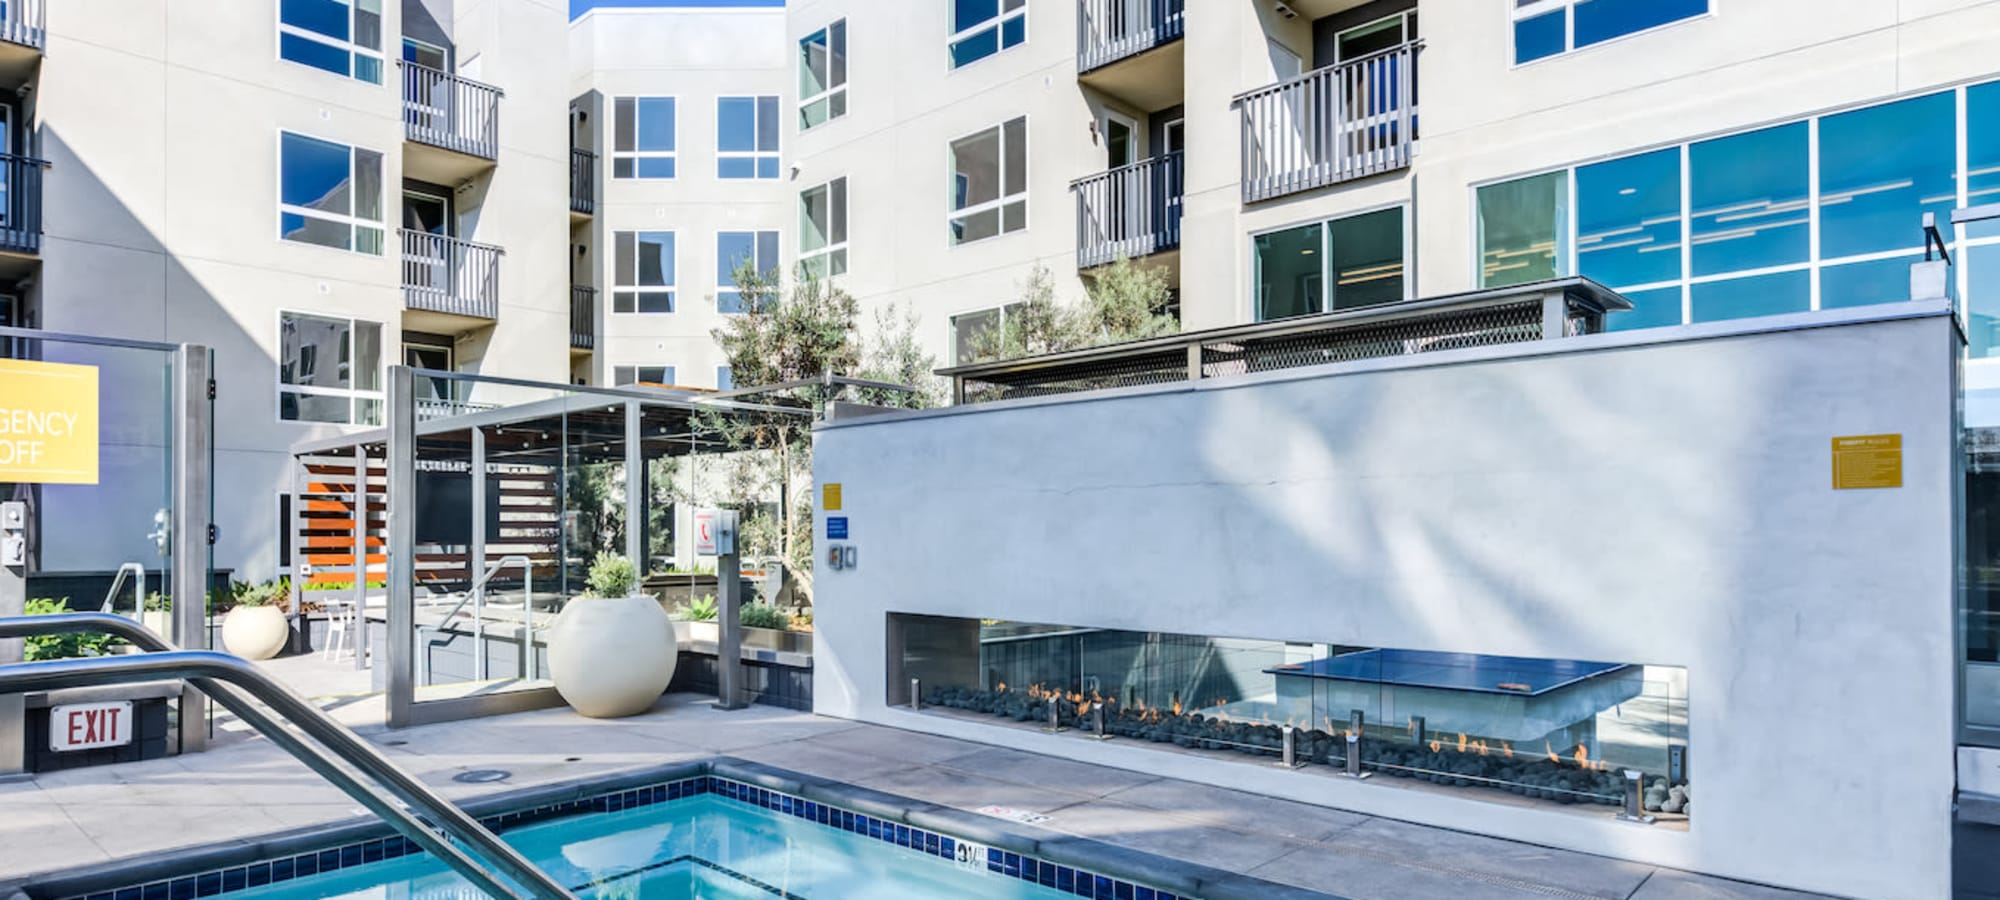 Virtual tour of The Link in Glendale, California